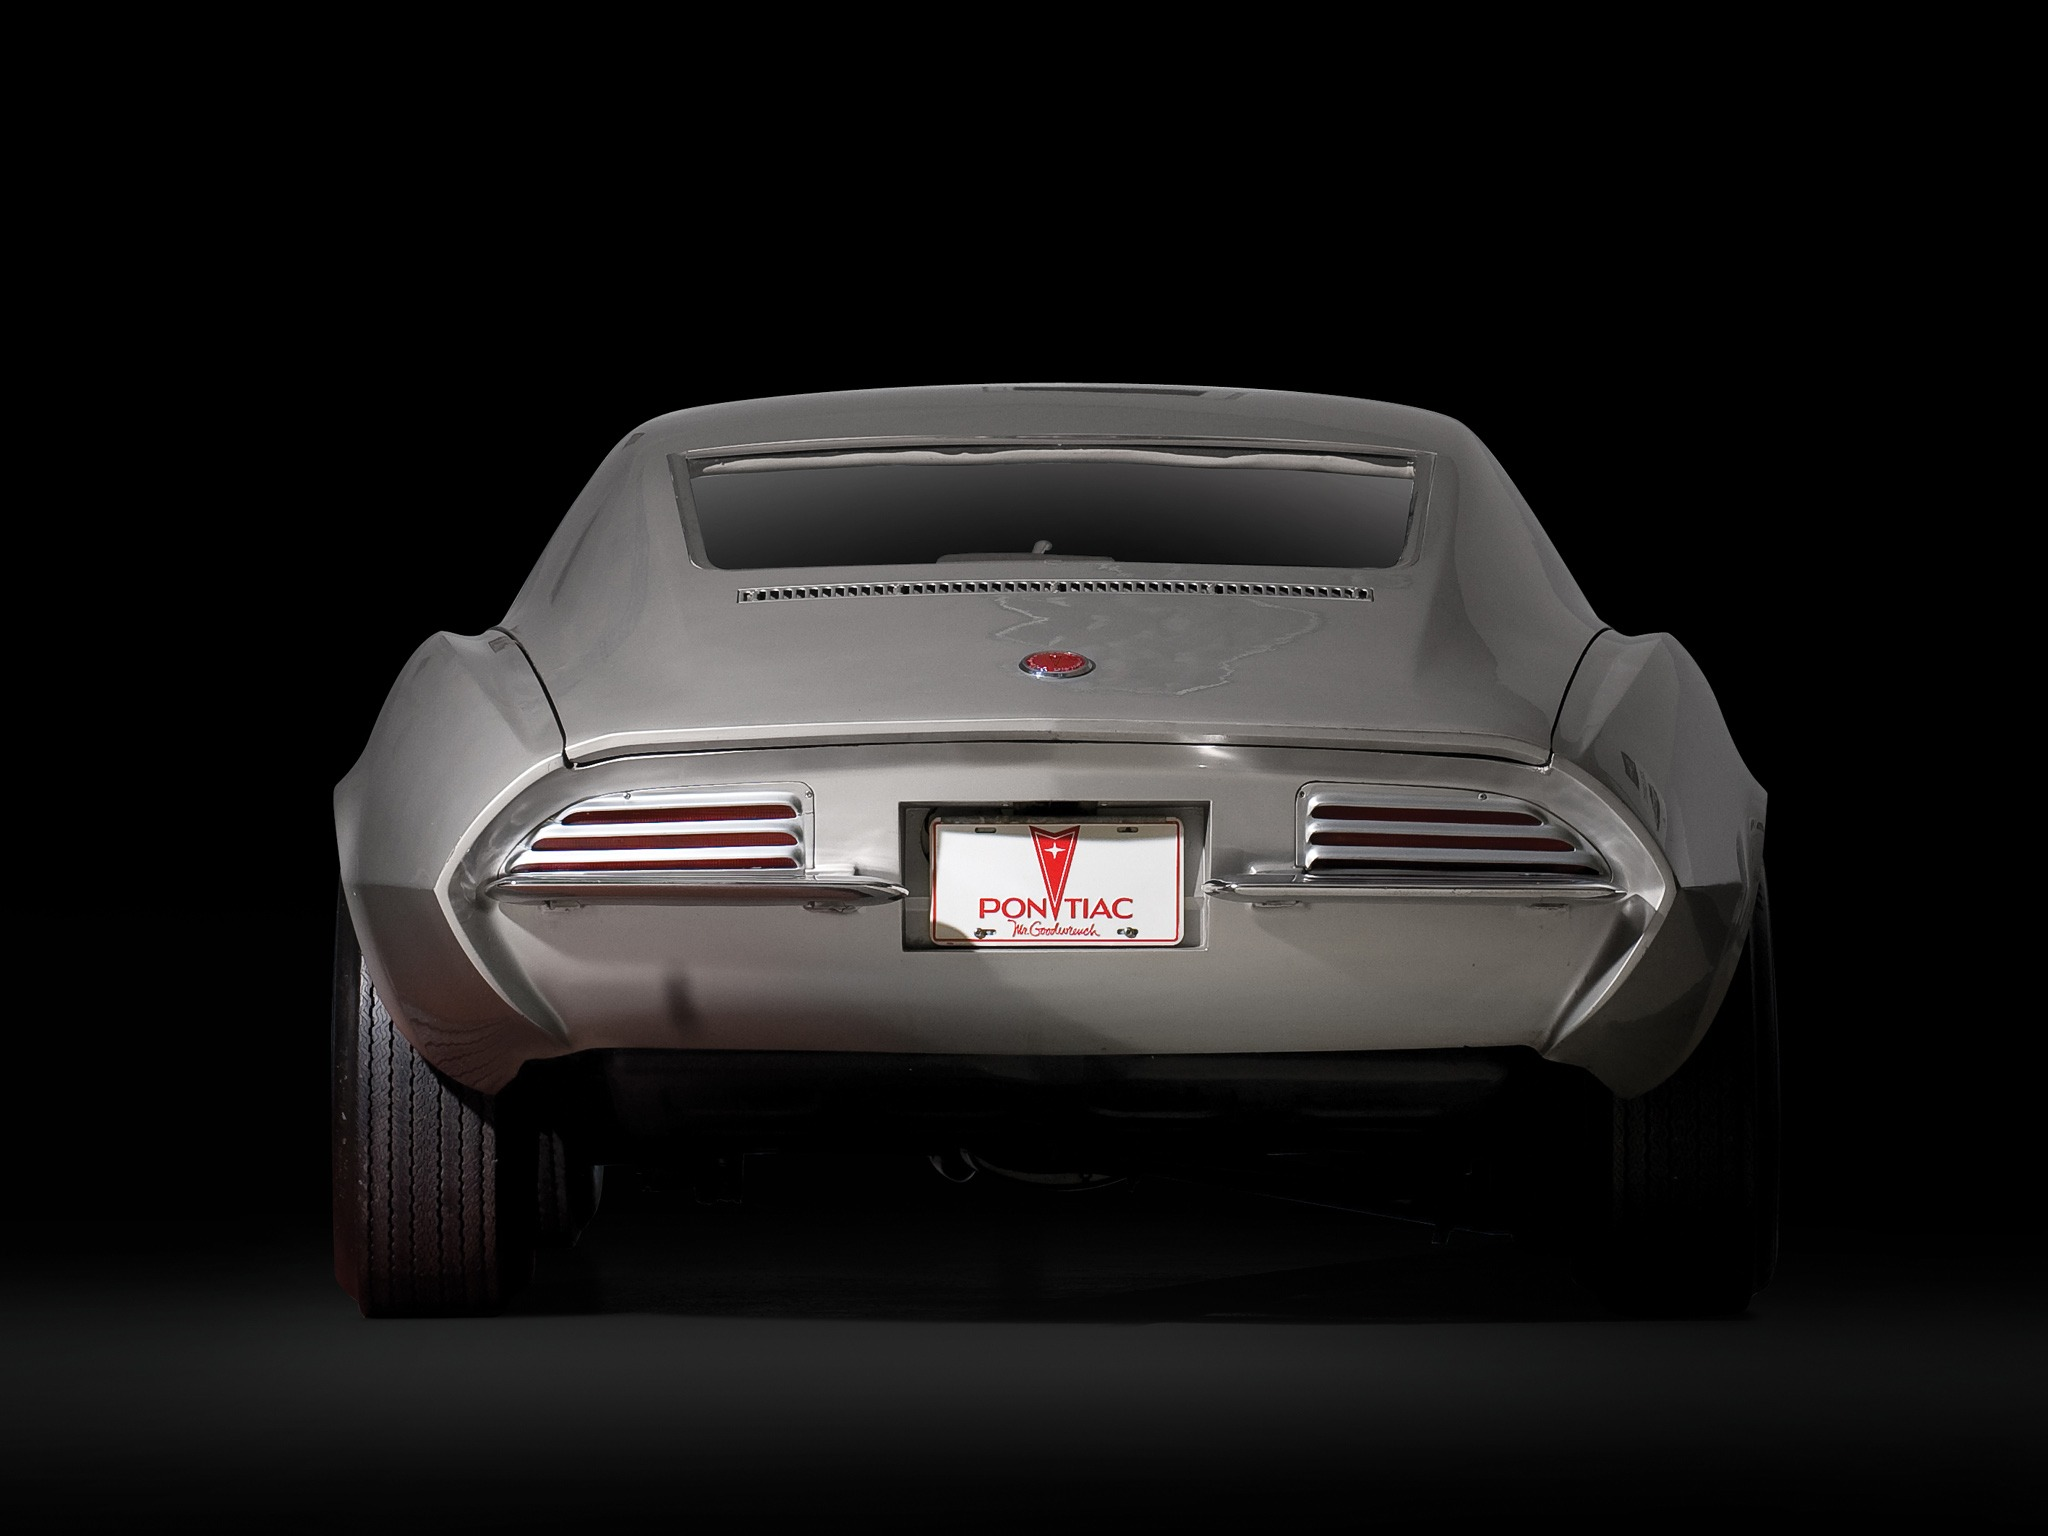 Top 10 Fastest Cars >> Pontiac Banshee Concept Car (1964) - Old Concept Cars